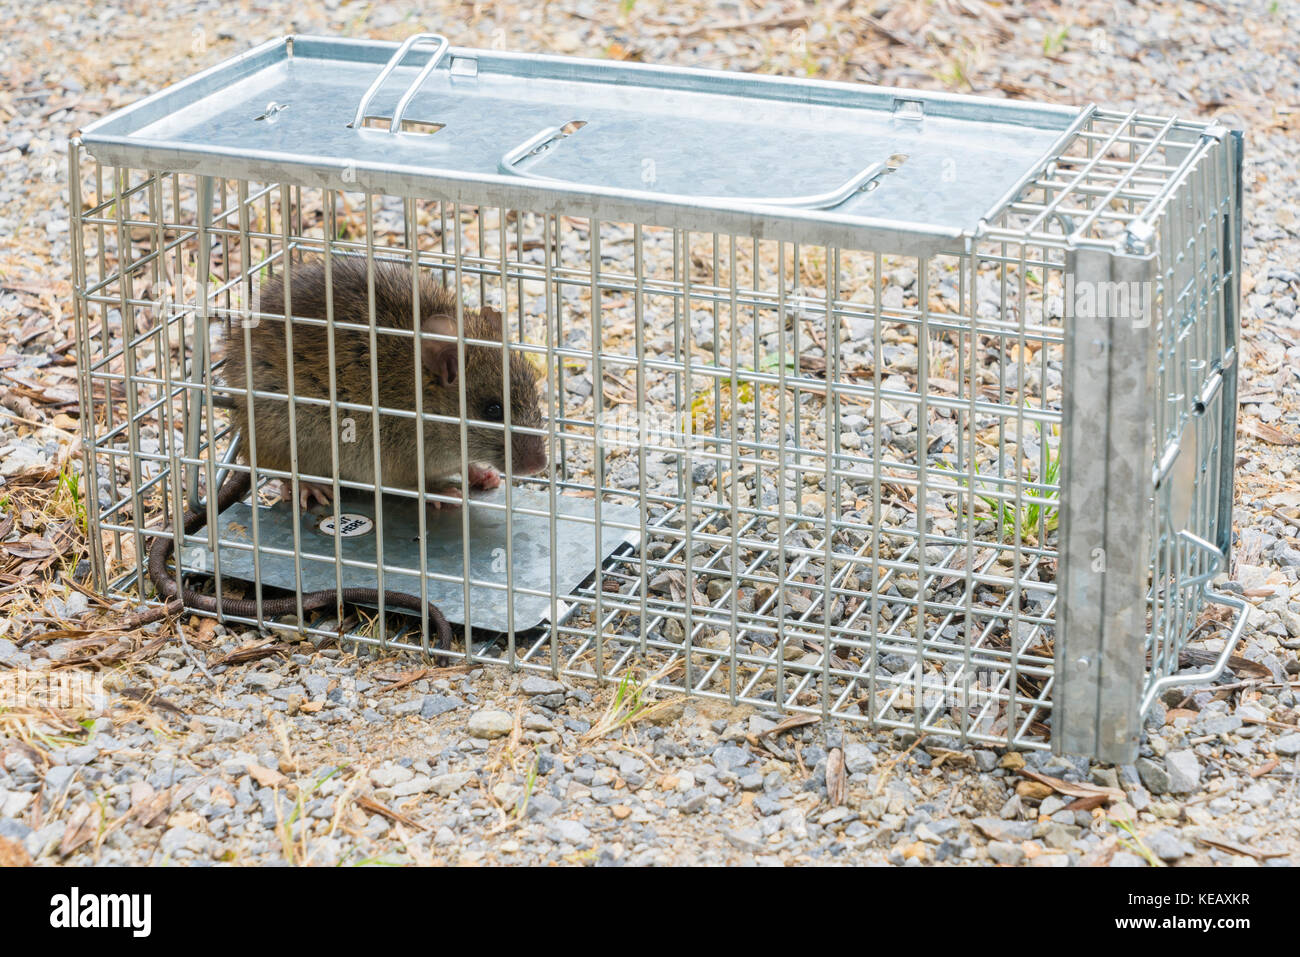 rat trap cage stockfotos rat trap cage bilder alamy. Black Bedroom Furniture Sets. Home Design Ideas